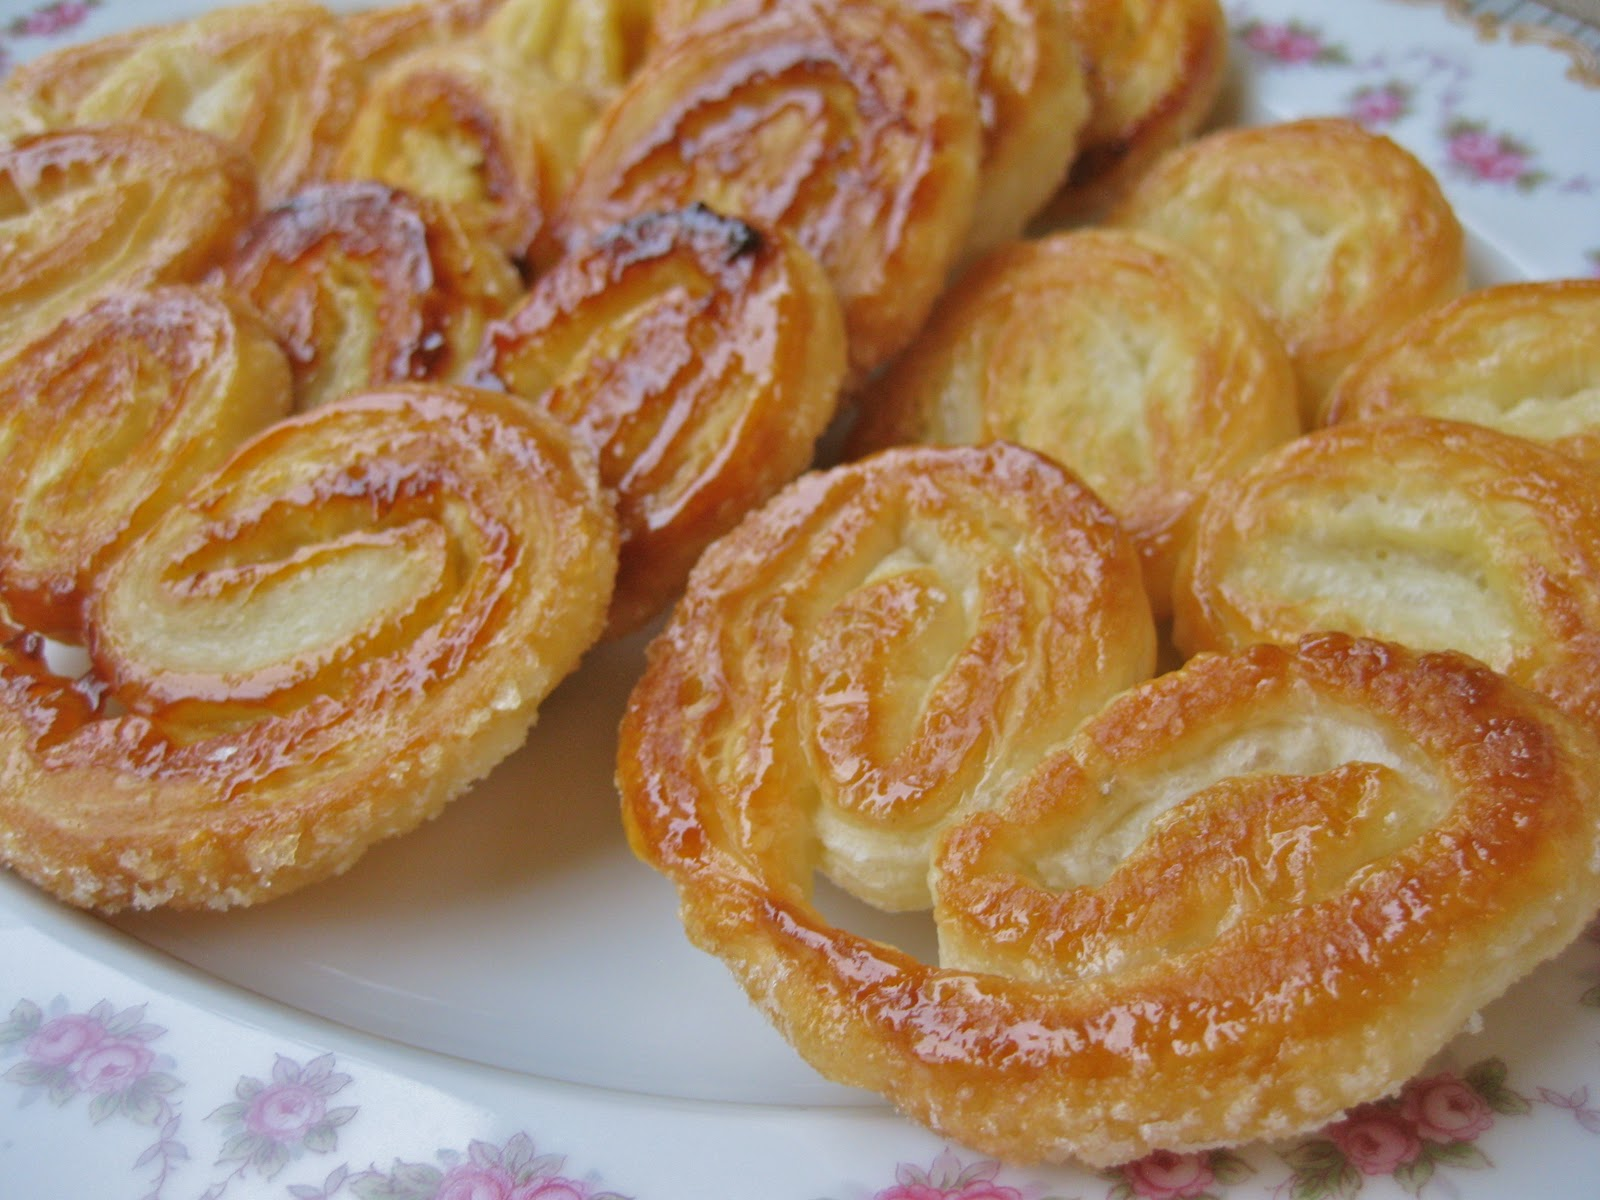 Palmiers in a snap - Good Taste is the Worst Vice